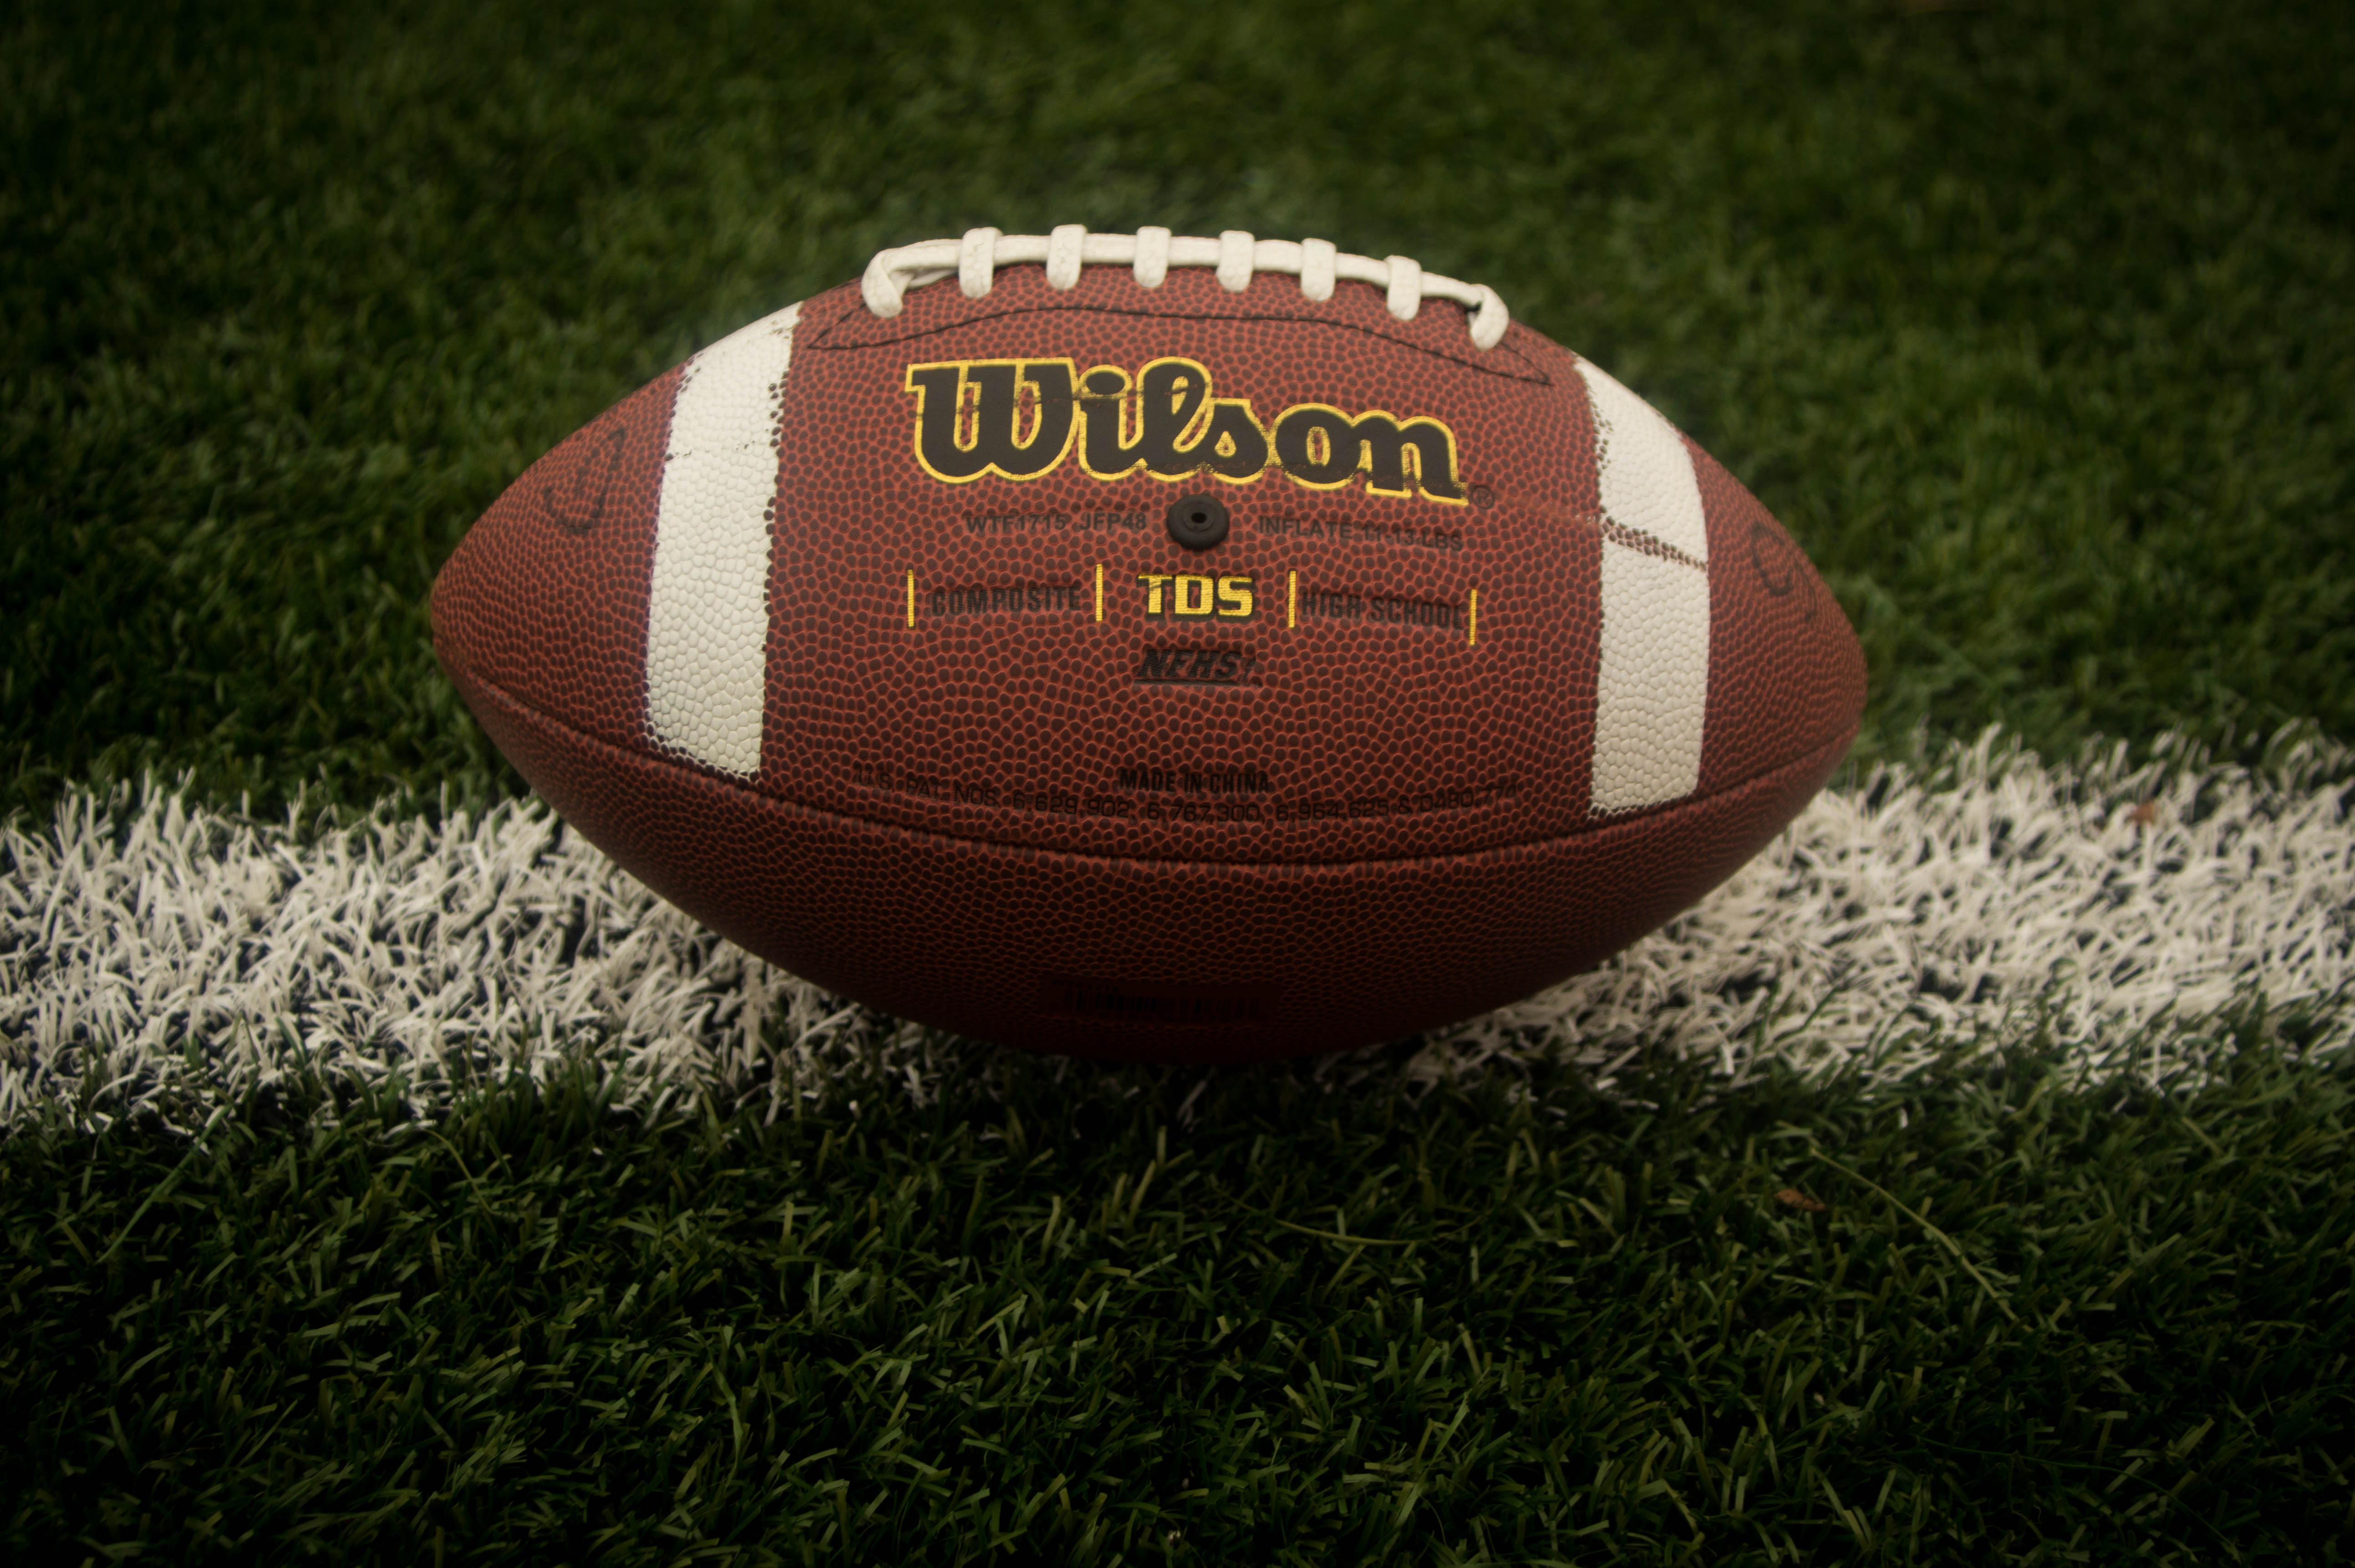 American Football Game Ball  2426.55 Kb